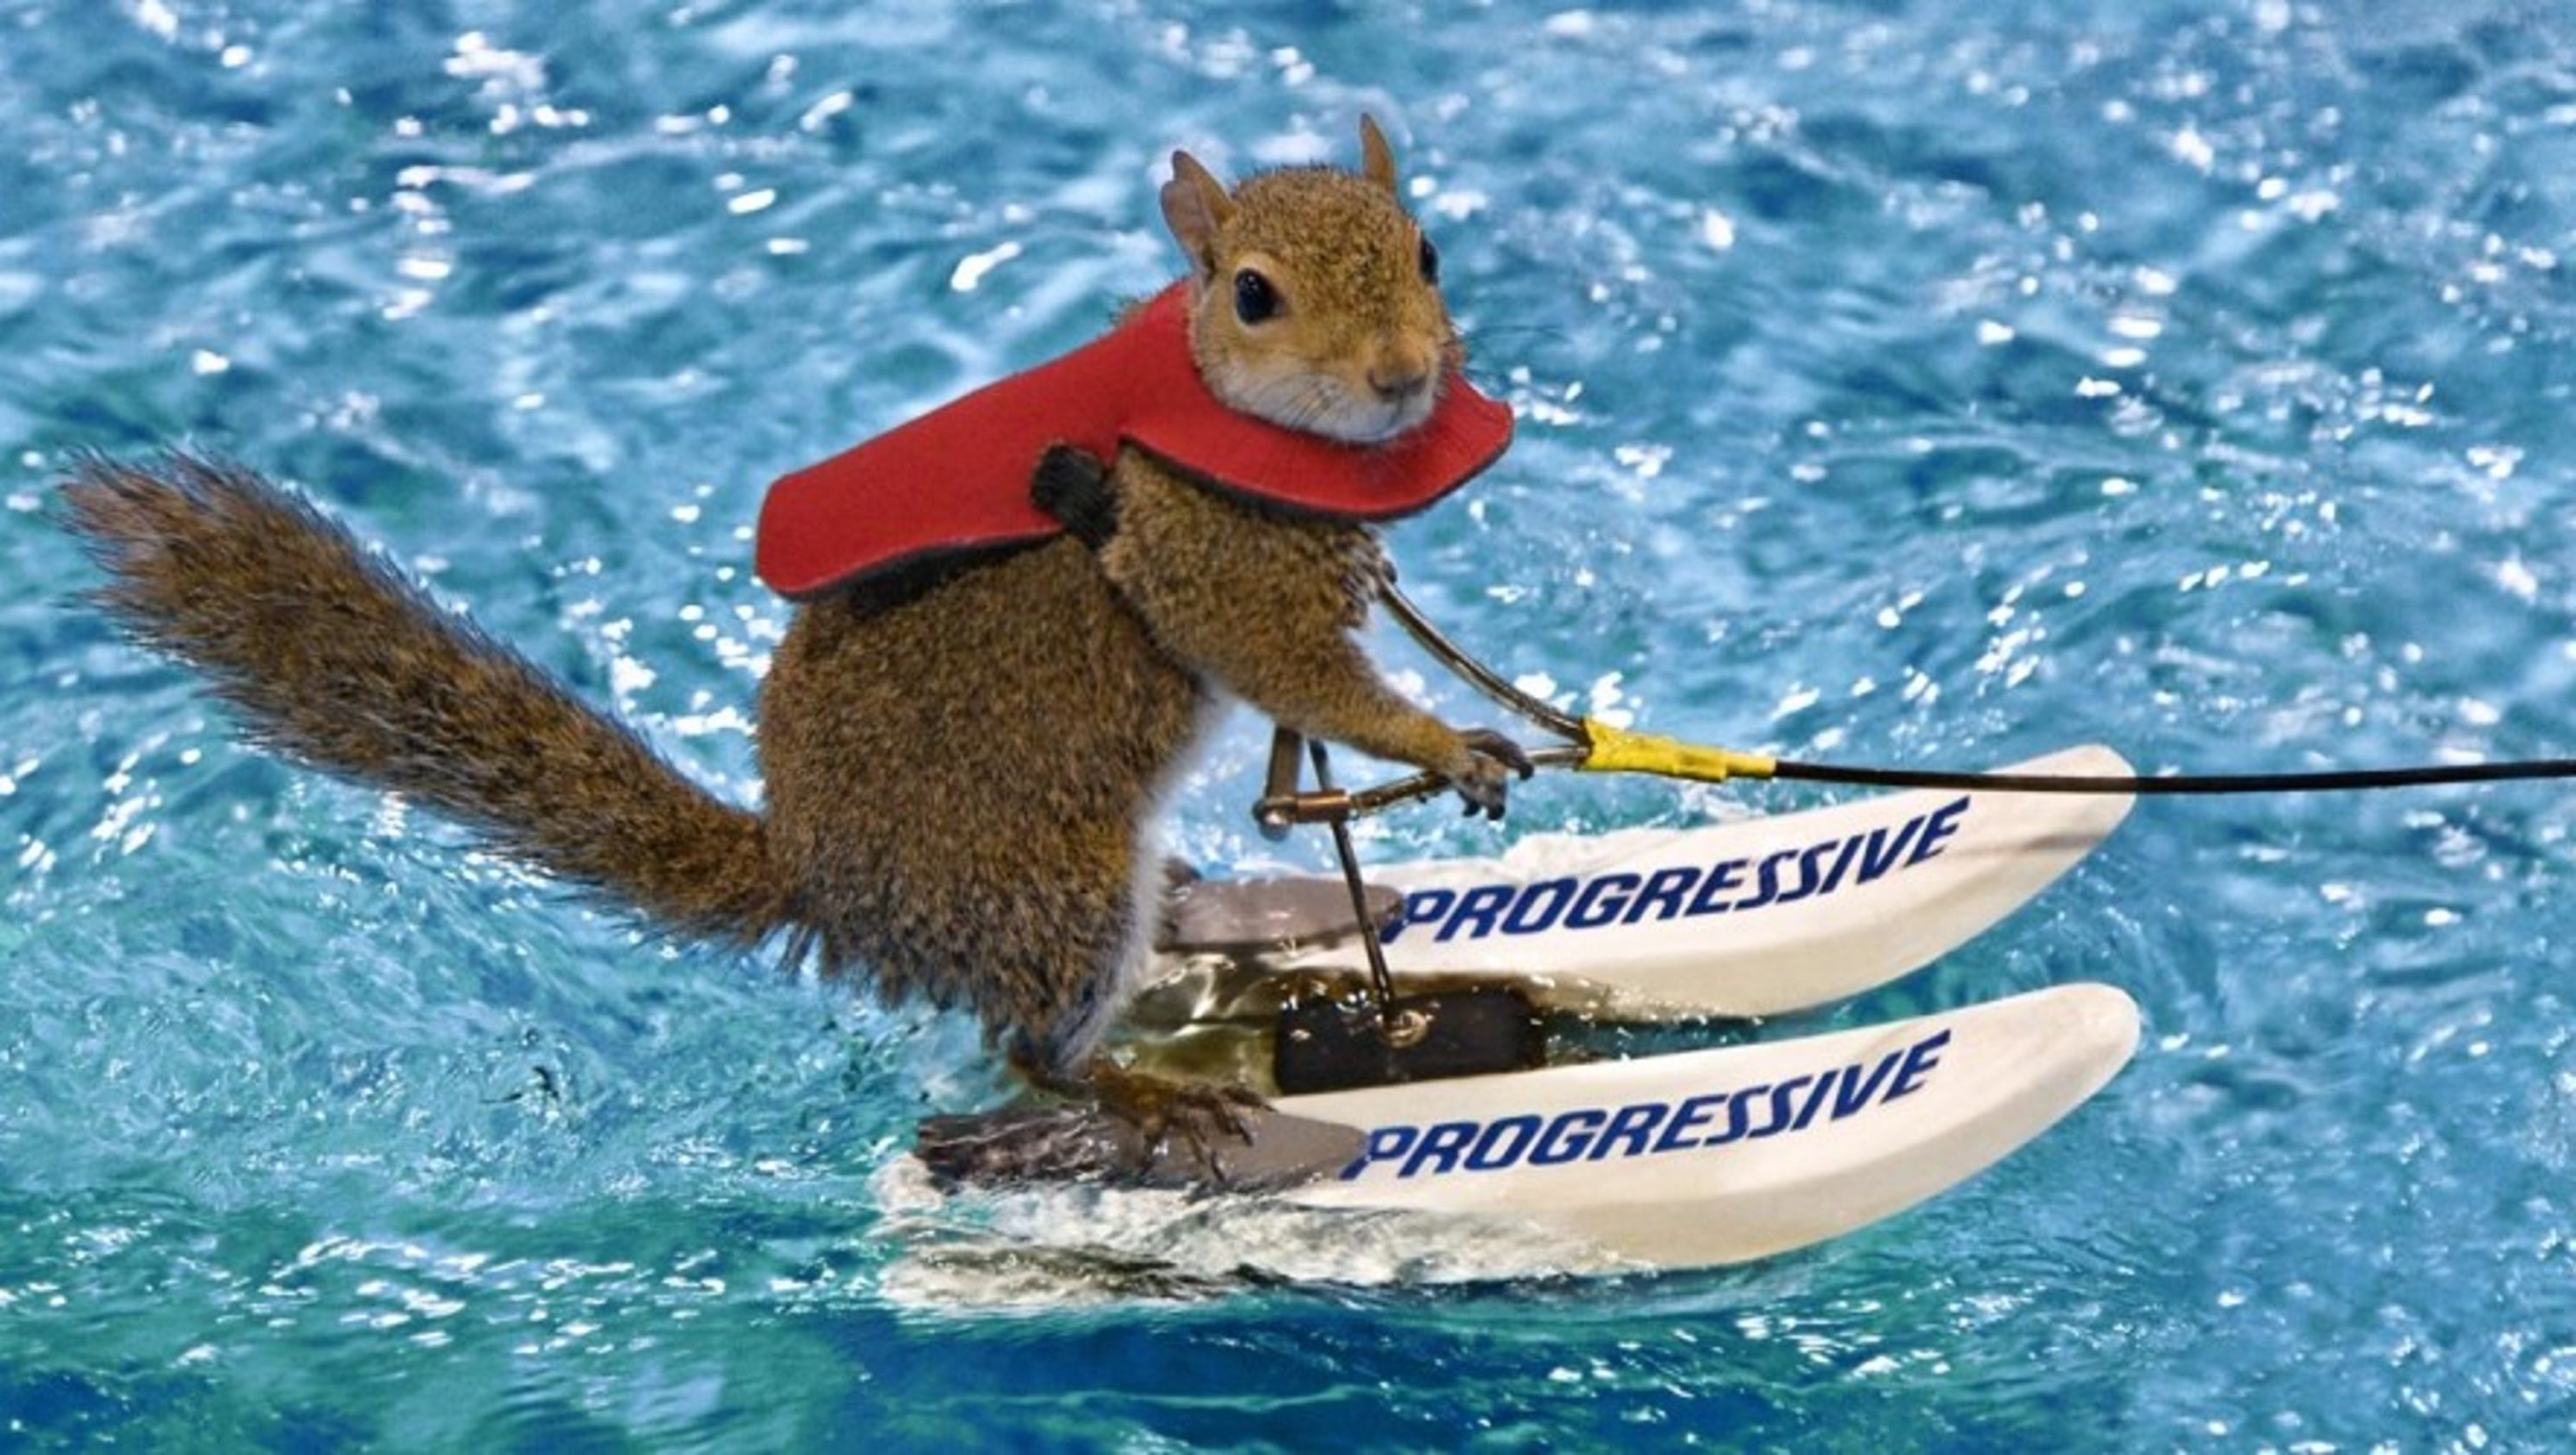 World Famous Skiing Squirrel Heading to Louisville